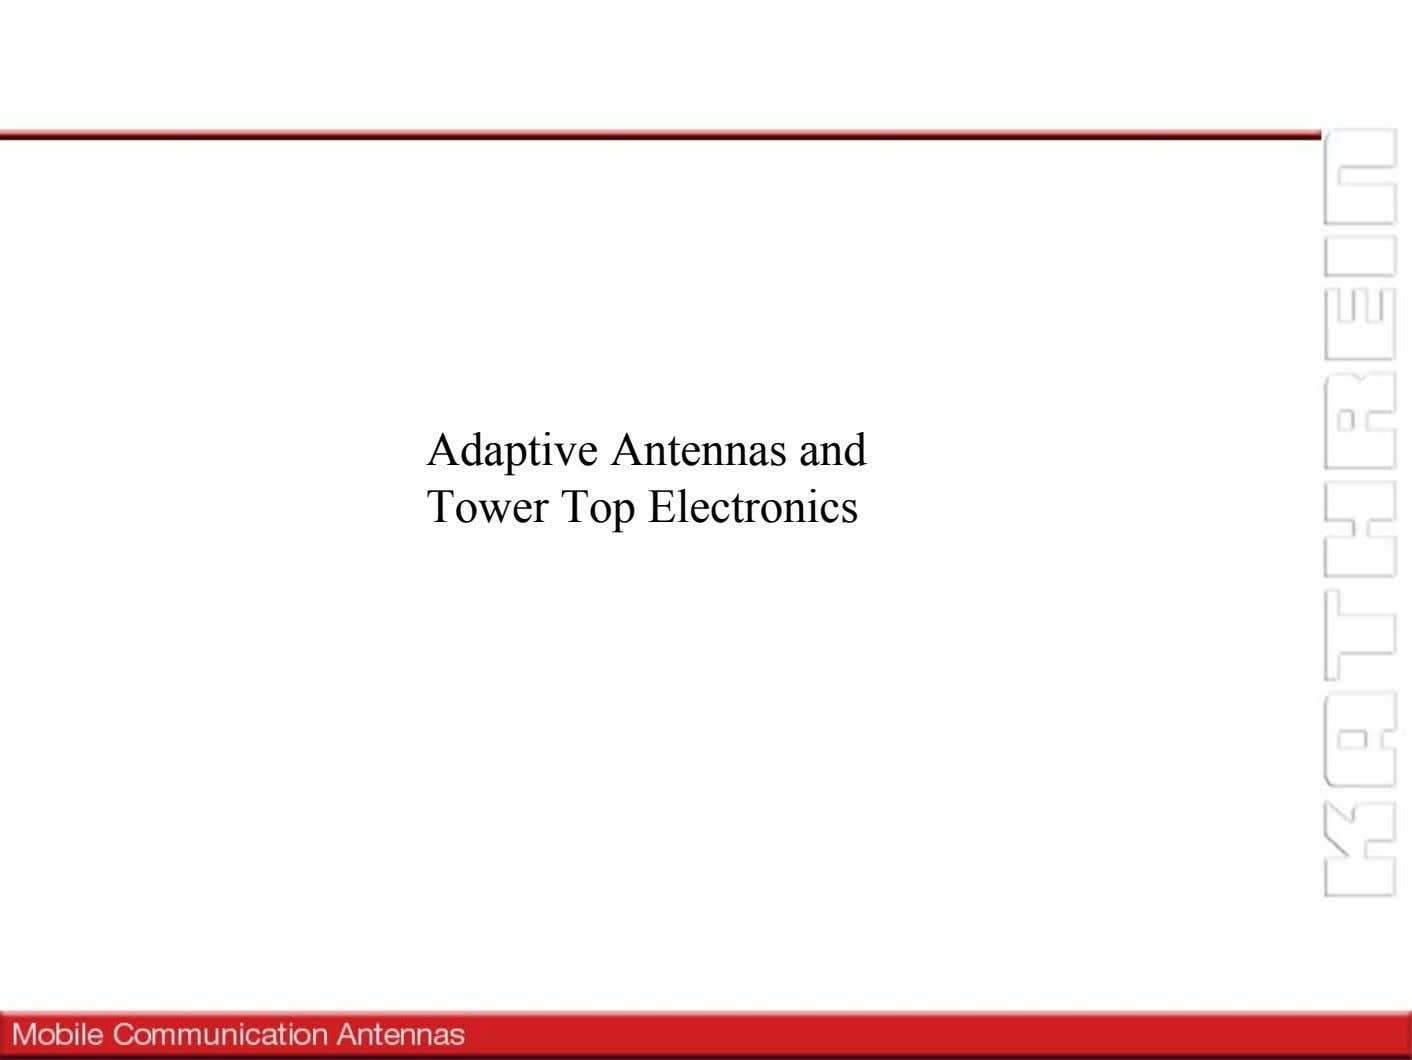 Adaptive Antennas and Tower Top Electronics